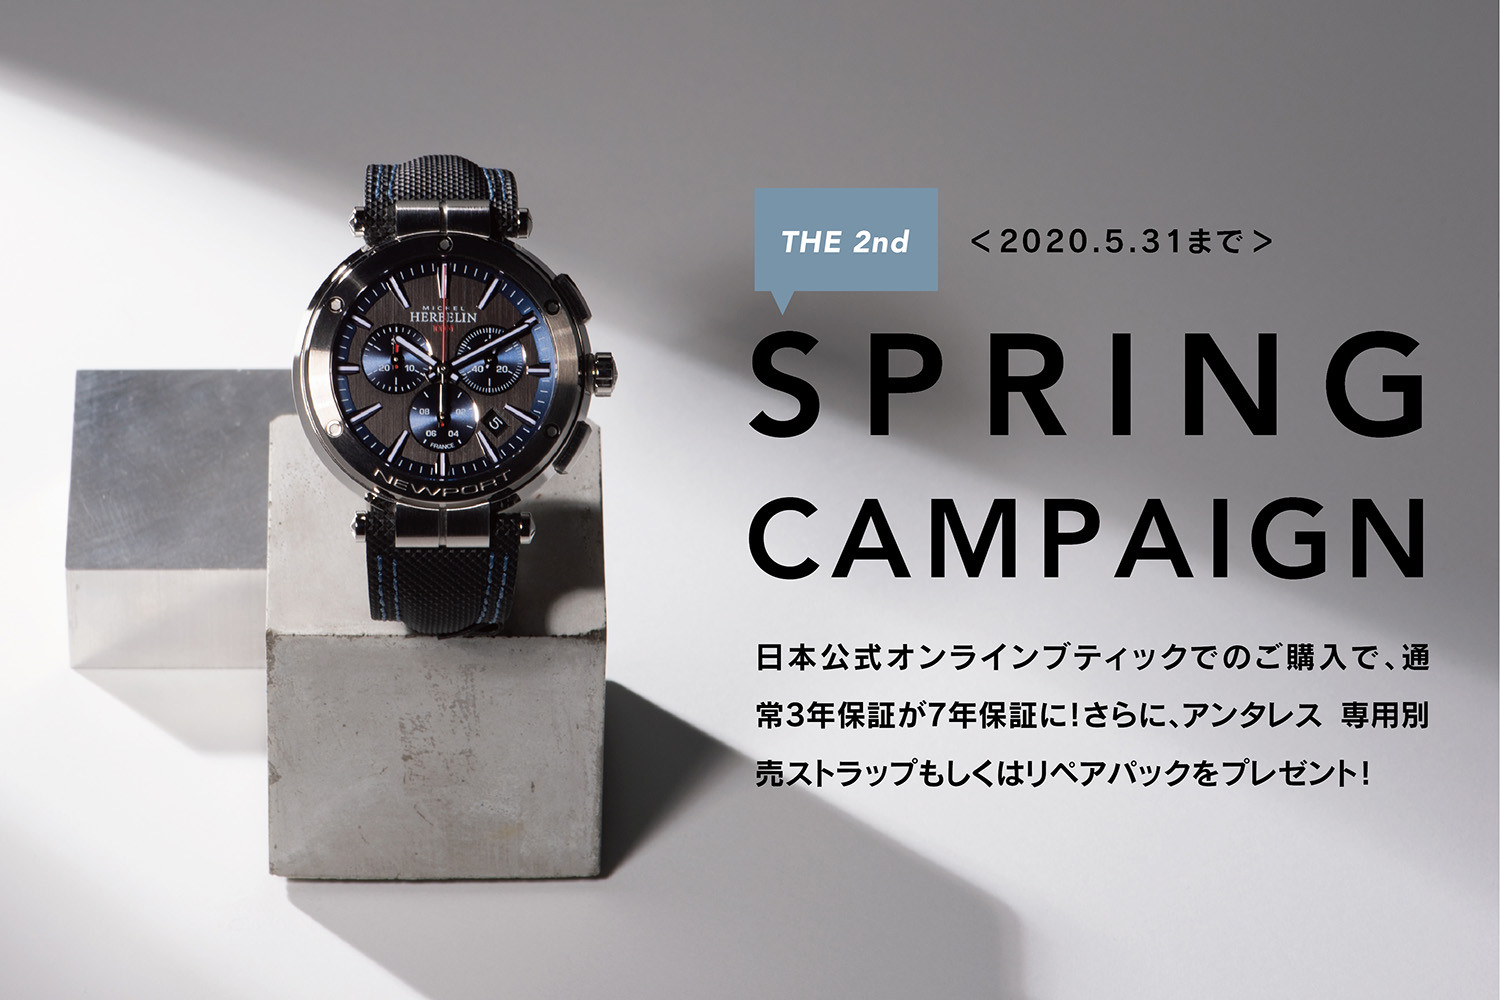 THE 2nd SPRING CAMPAIGN 開催中!